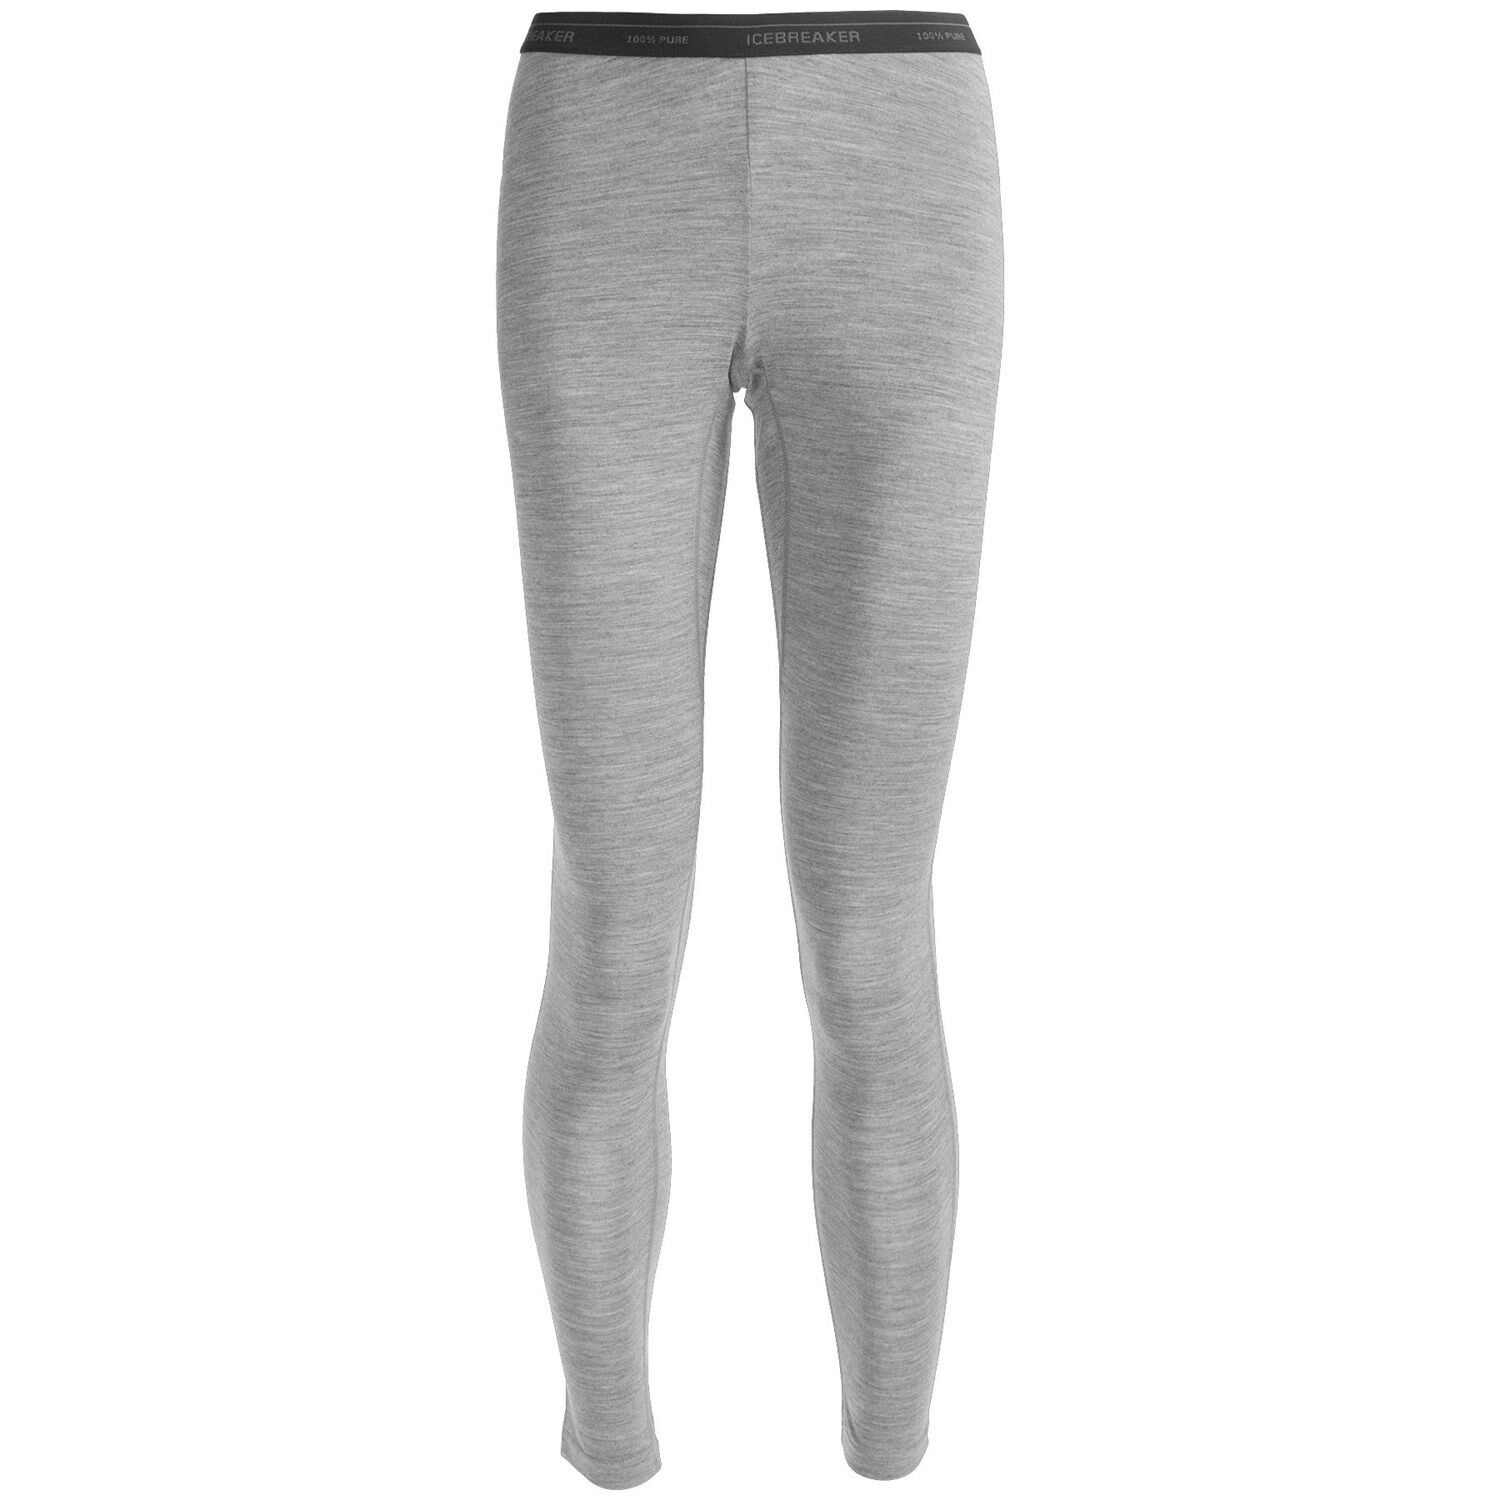 NEW Icebreaker Oasis Base Layer Lighweight Leggings - Women's -  XL - Merino Wool  top brands sell cheap